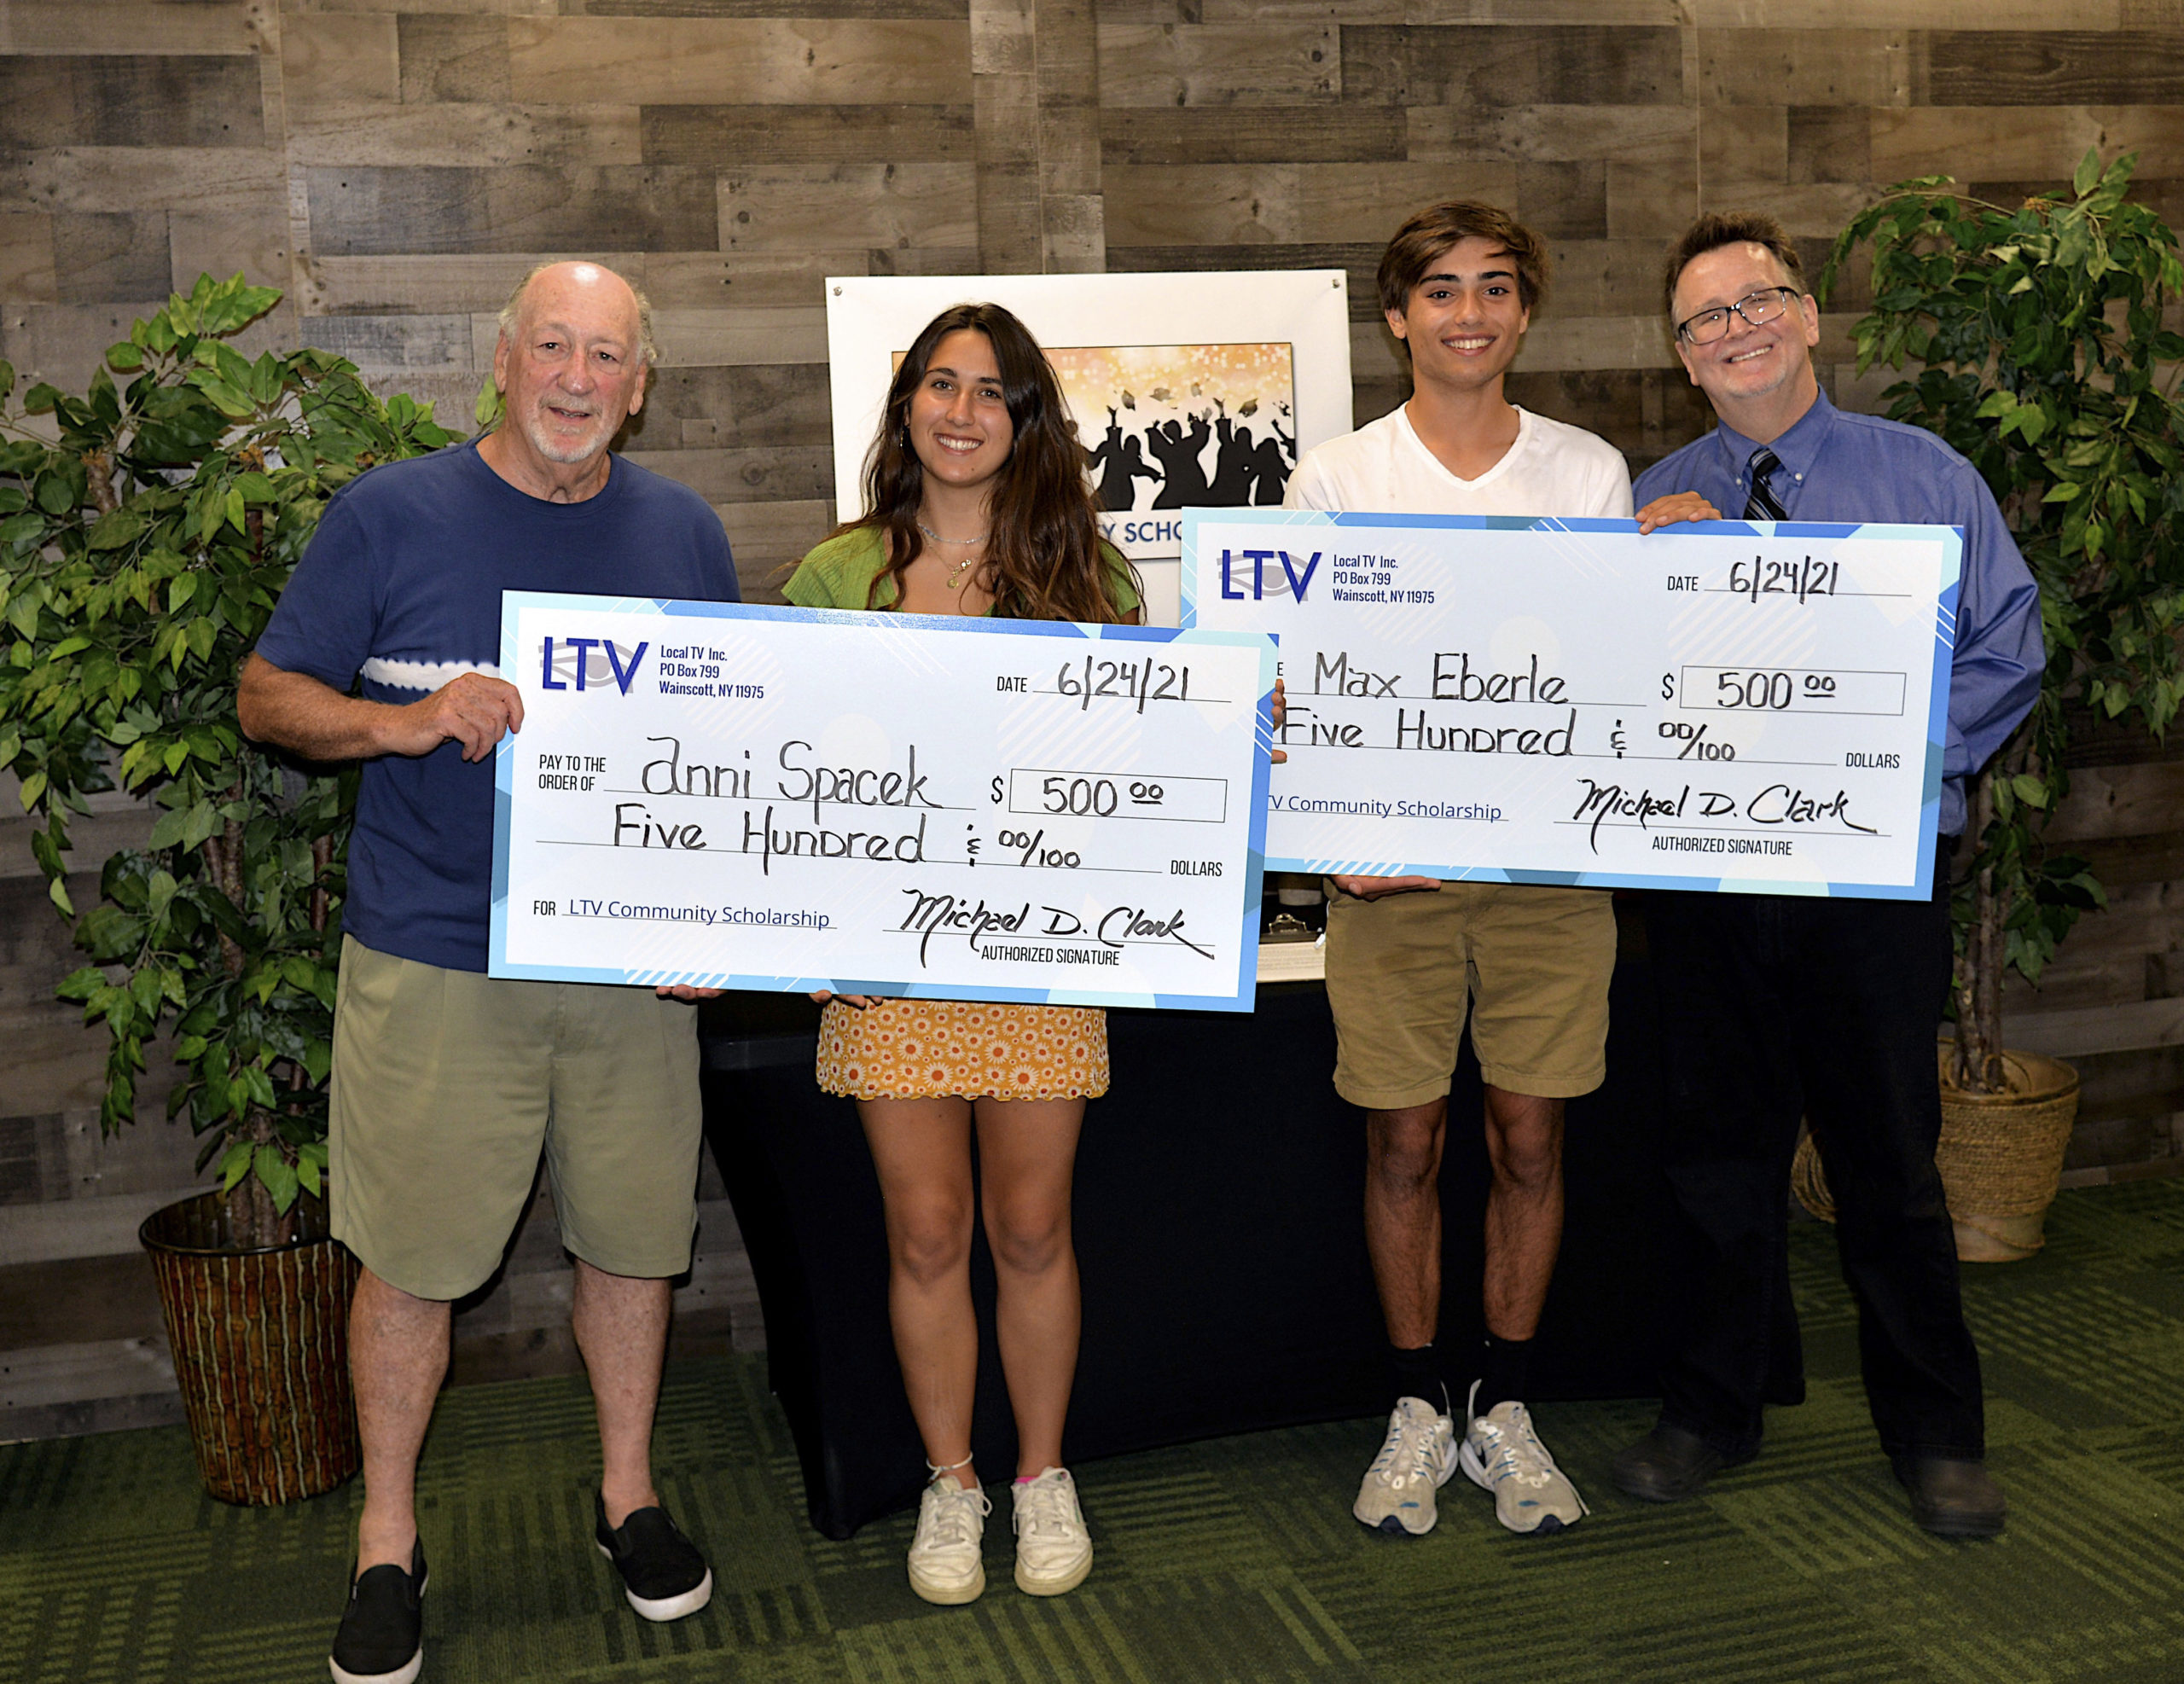 LTV presented $500  scholarships to East Hampton students  Anni Spacek and Max Eberle on June 24. The LTV Community Scholarship is presented to students with a passion for community media, lifelong learning, and free speech and  who are pursuing an education in film, television, broadcasting or radio.  With the students are  LTV Chairman Jon Olken and Michael Clarke.   KYRIL BROMLEY